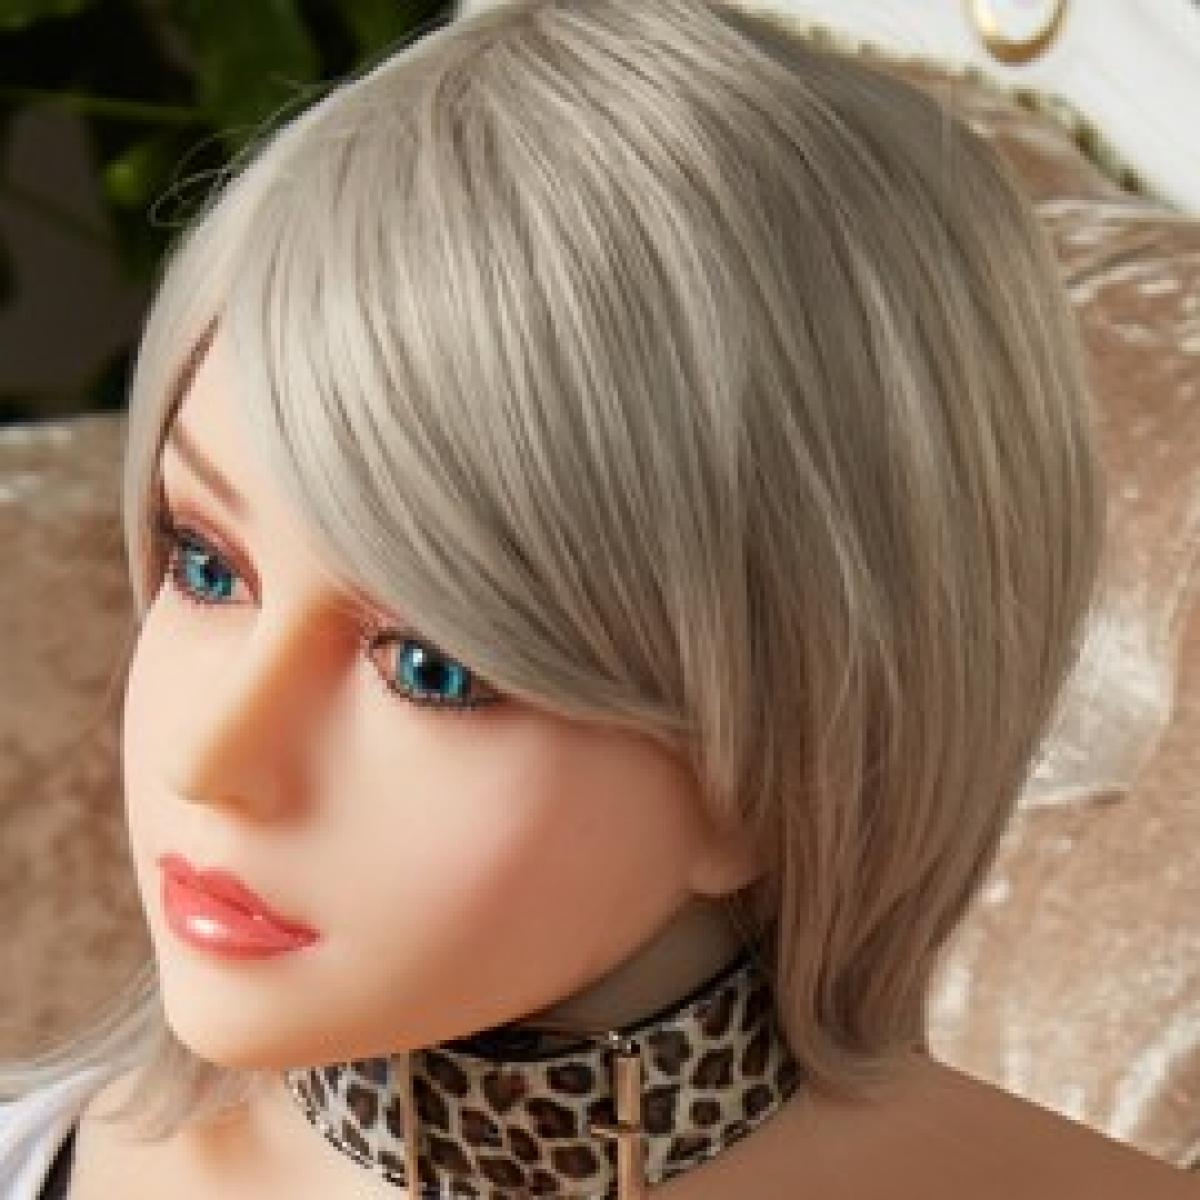 Allure Amani Head - Sex Doll Head - M16 Compatible - Natural